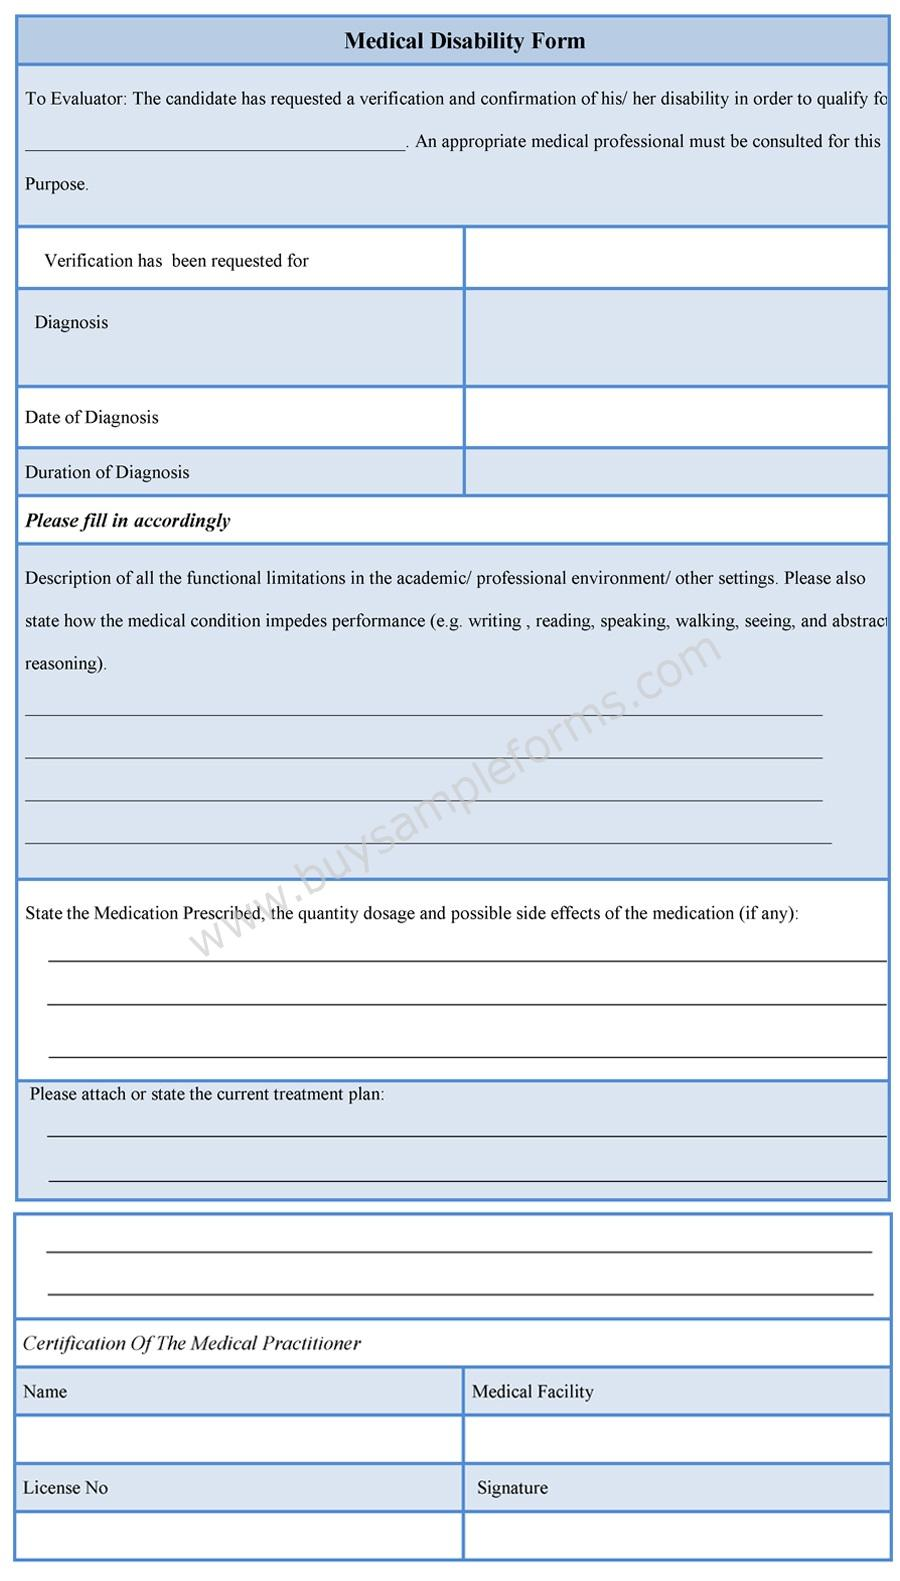 Download Easy To Edit Medical Disability Form At Only $3.00